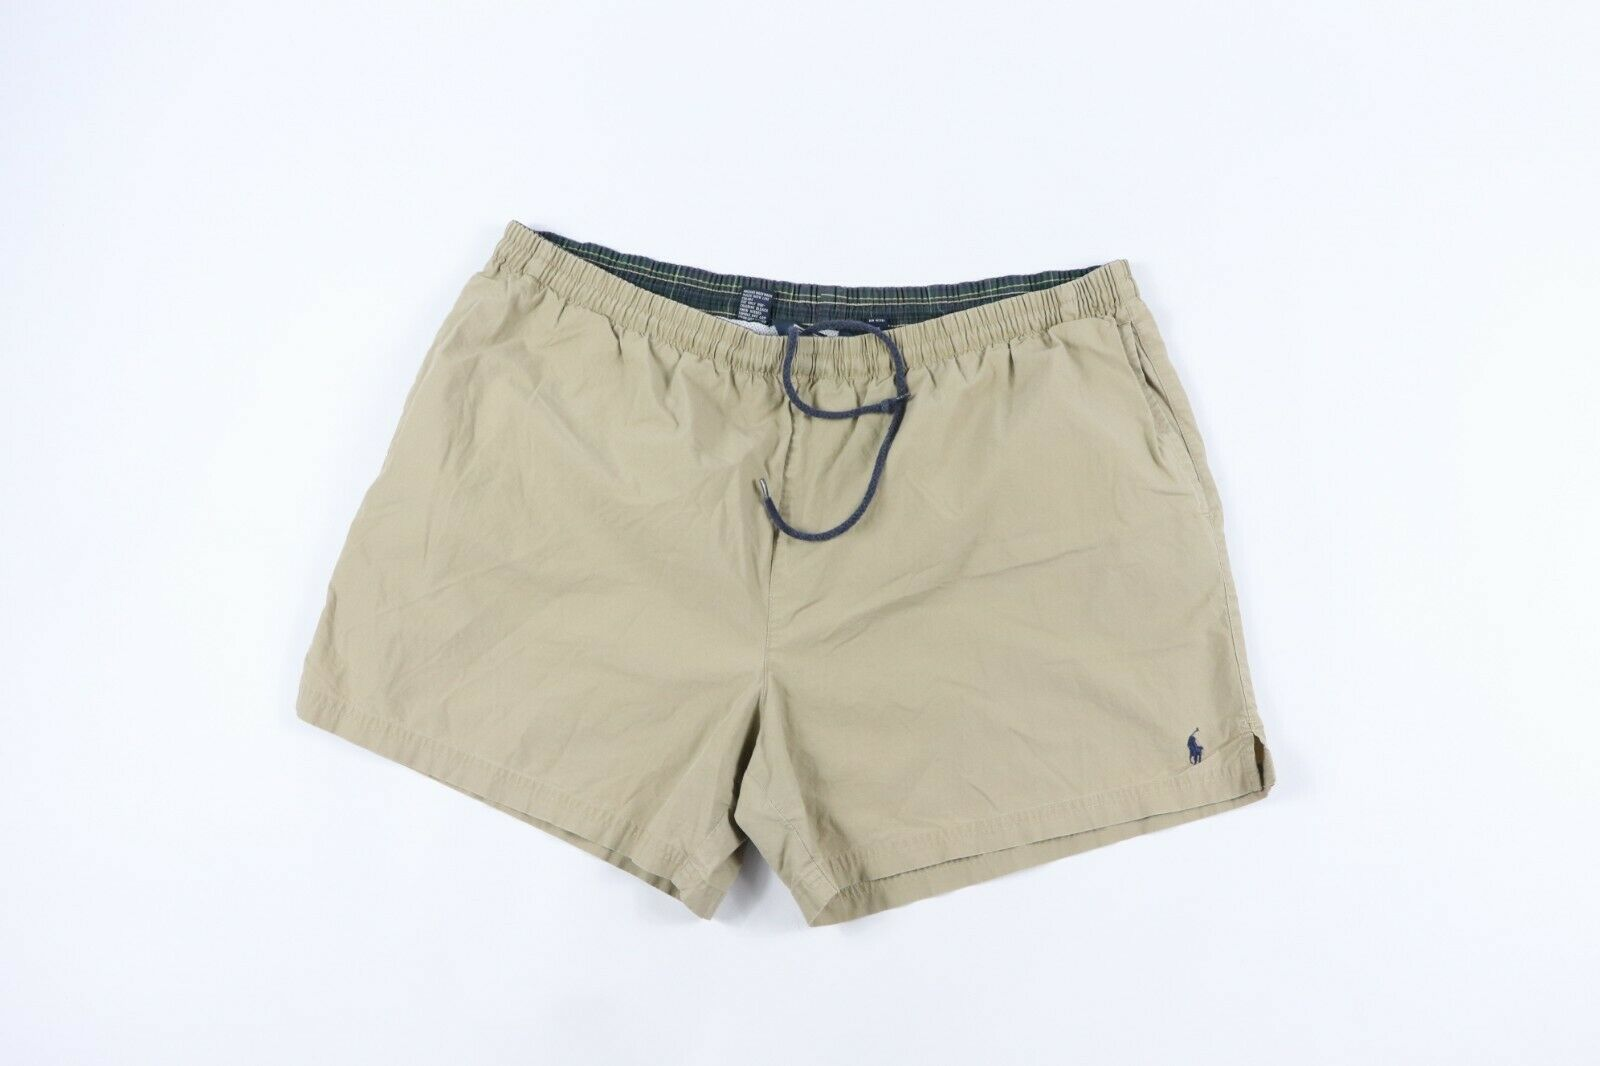 Vintage 90s Polo Ralph Lauren Mens XL Lined Nylon Swimming Swim Trunks Shorts